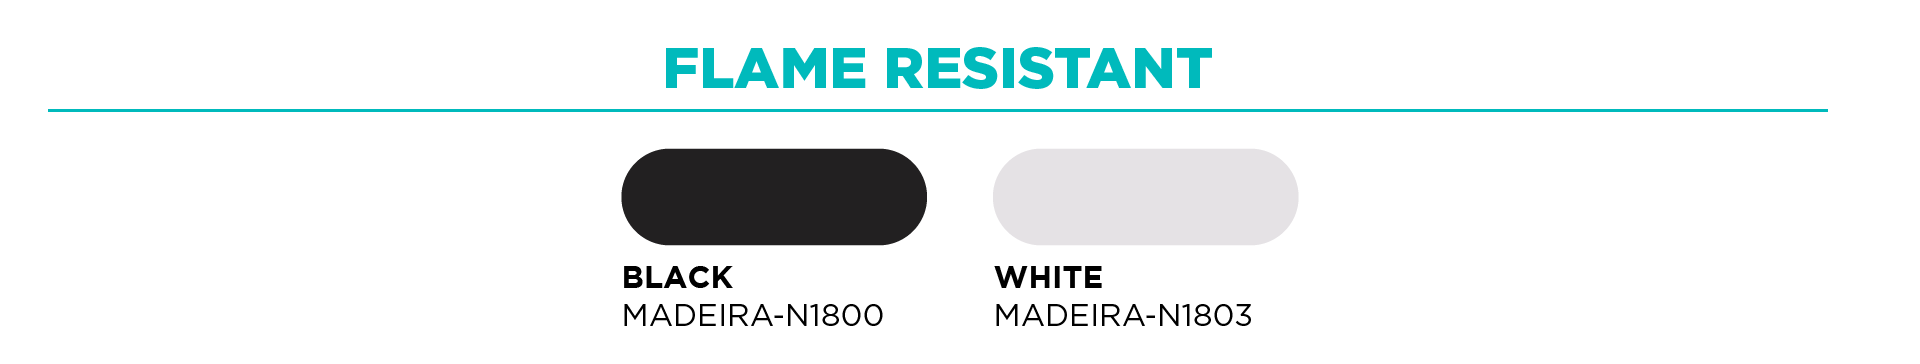 Flame Resistant Thread Color Options for Embroidery